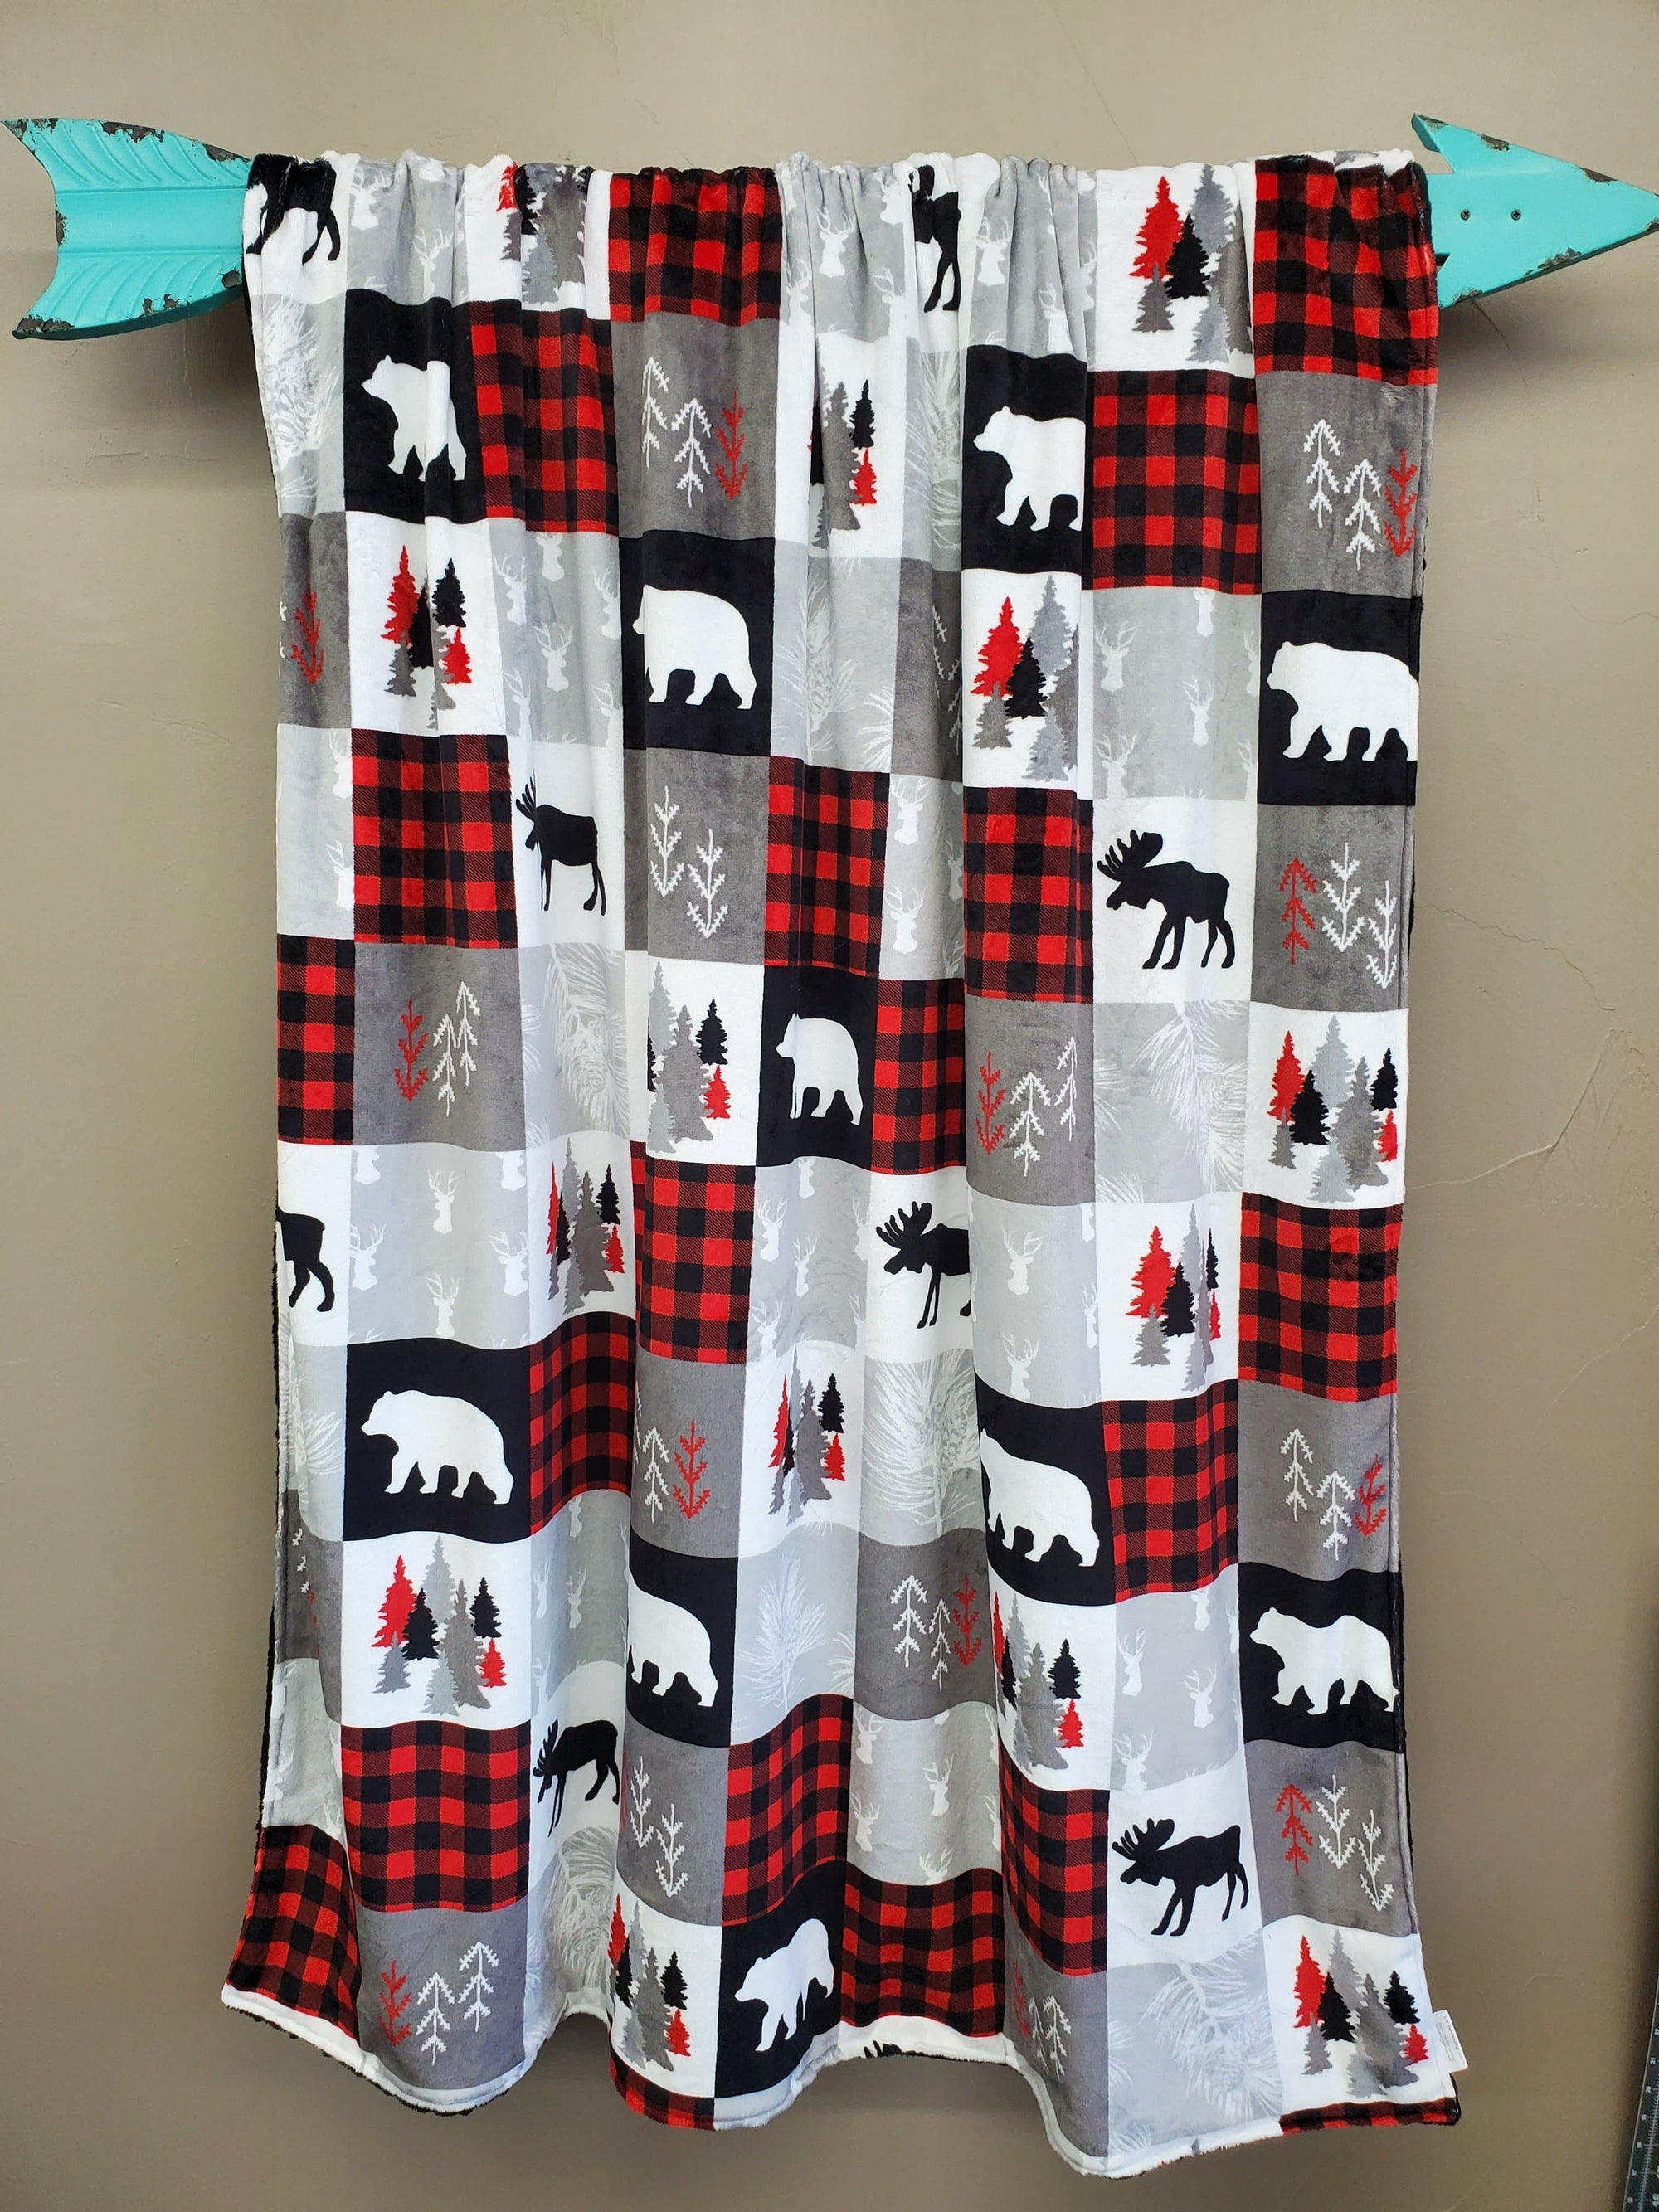 Twin, Full, or Queen Blanket - Patchwork Print Woodland Minky in Red, Black, Gray